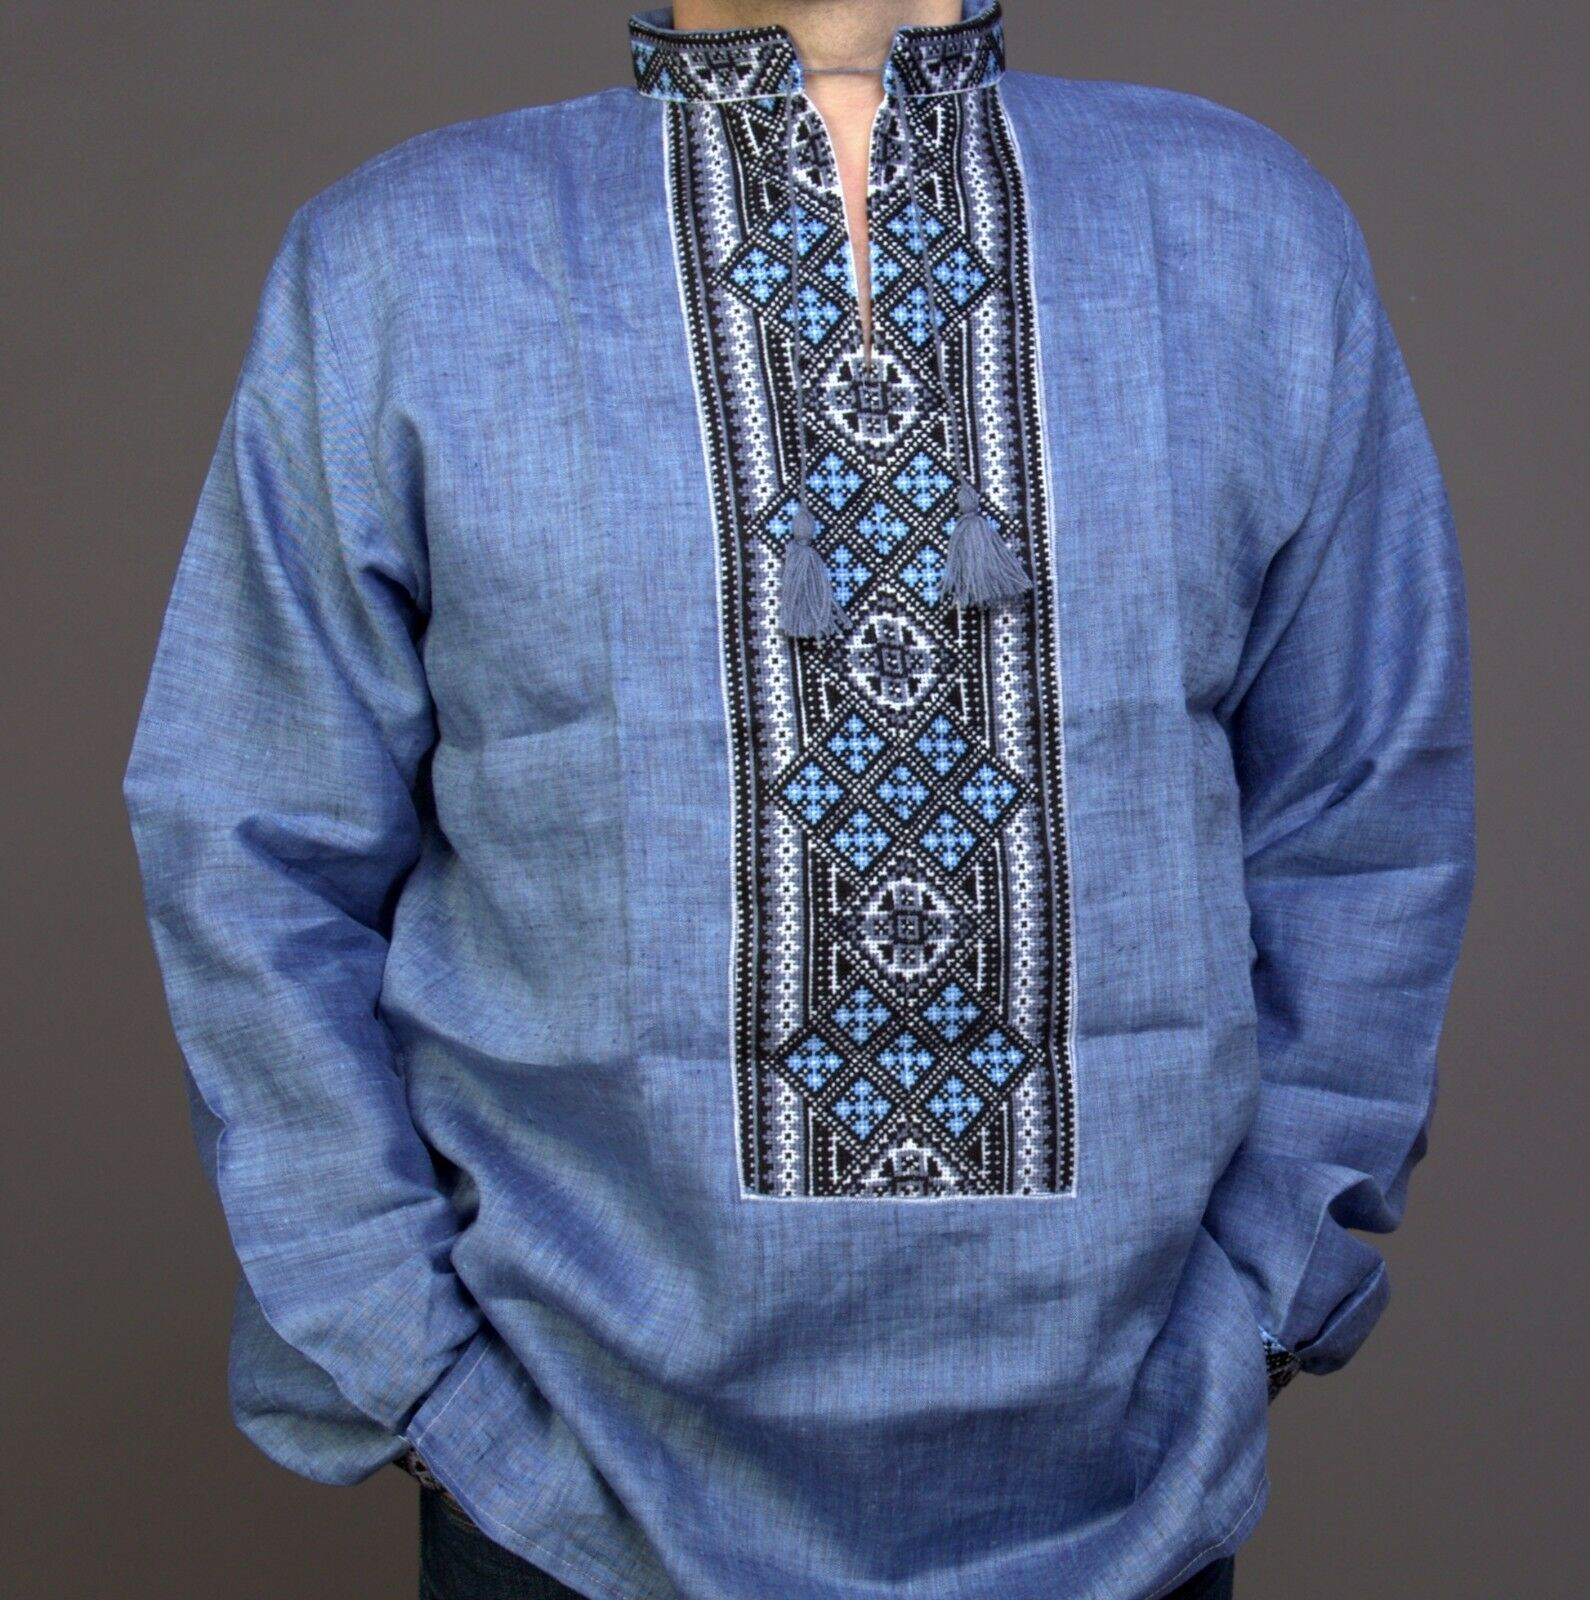 VYSHYVANKA for Man Ukraine Embroidery LINEN bluee White S-4XL Easter Gif